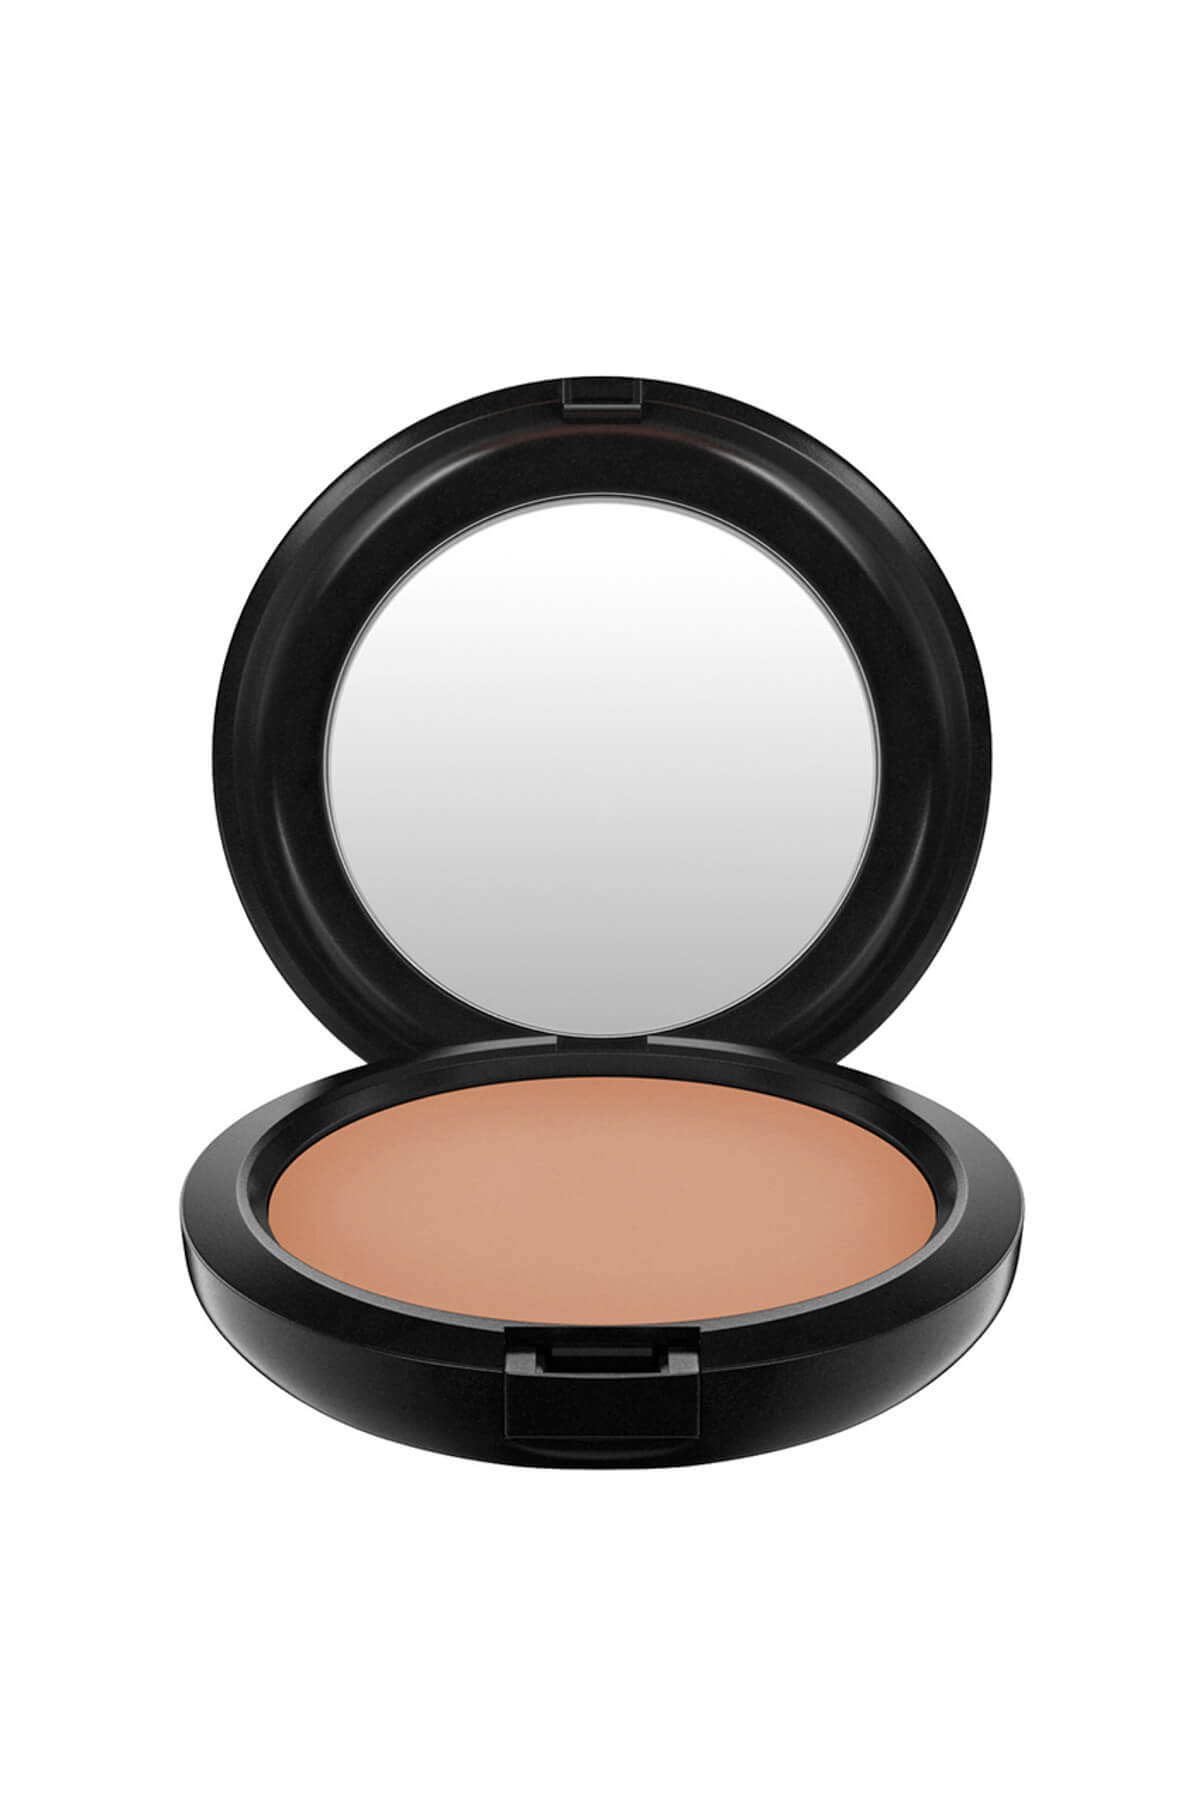 MAC Bronzing Powder - Matte Bronze 10g/0.35oz